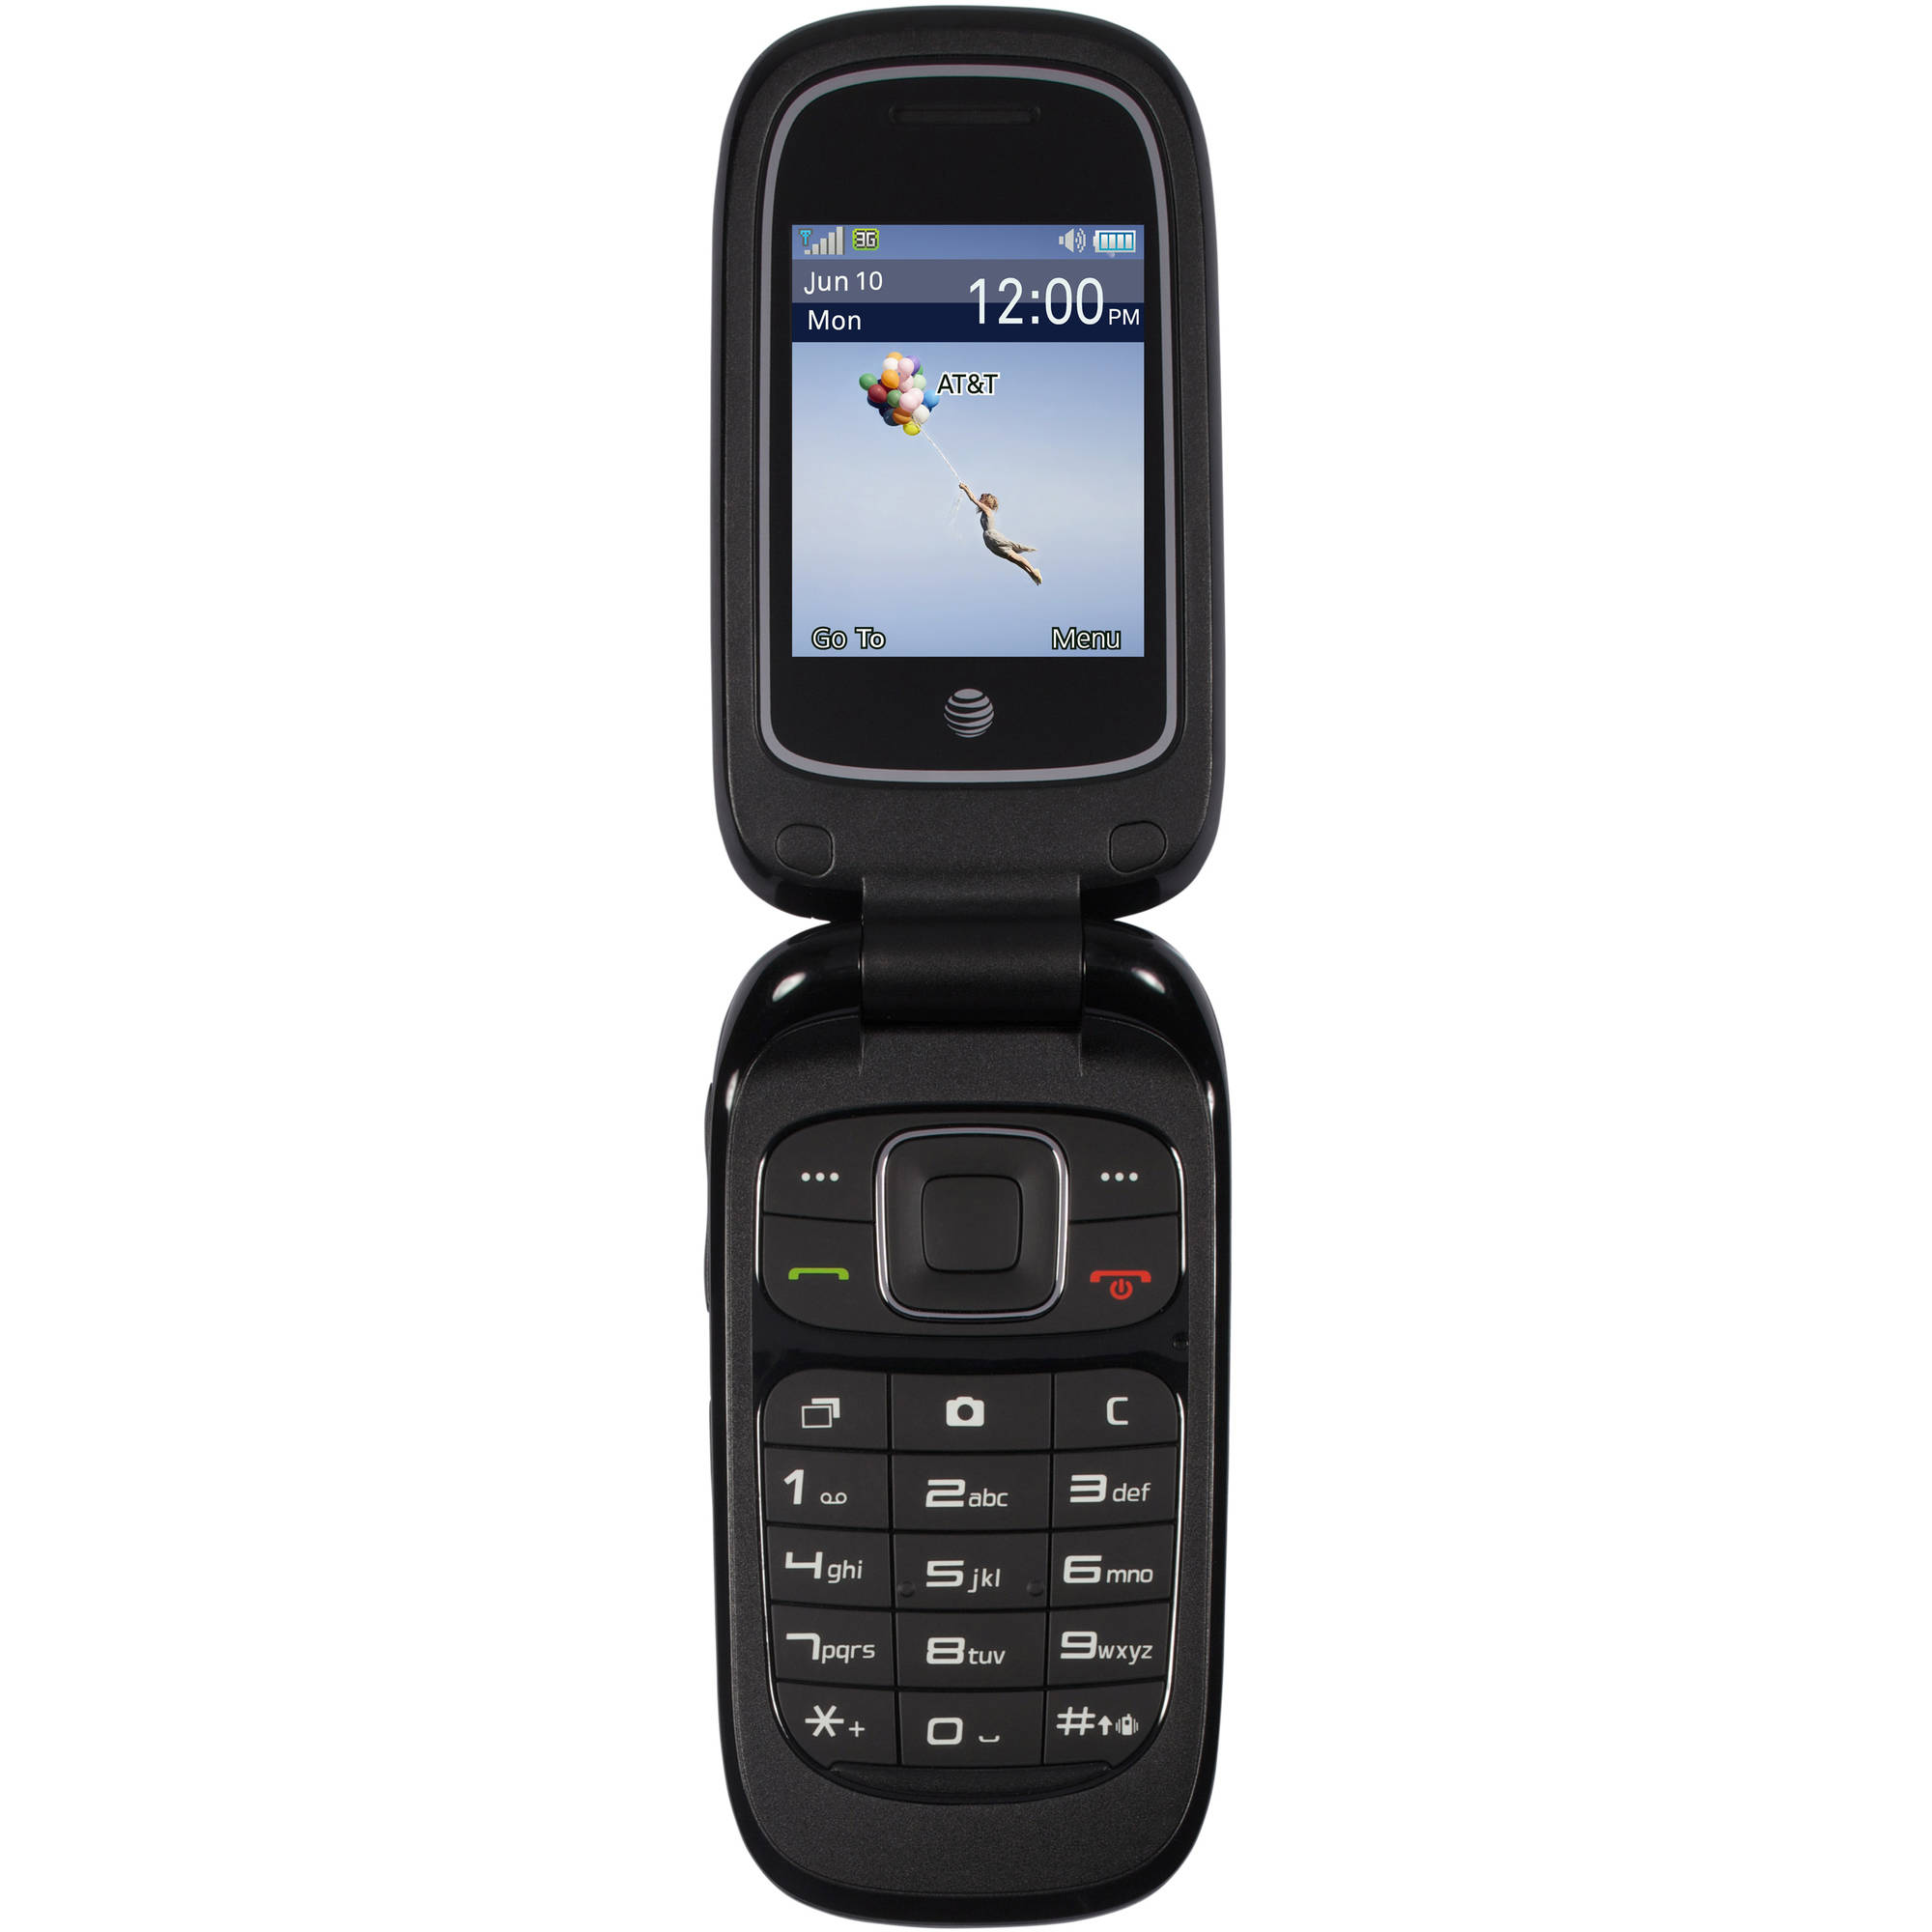 Get connected with the Kyocera Rally T-Mobile Prepaid Cell Phone. It features a compact, sleek, ergonomic design that is easy to use. This T-Mobile cell phone comes in an attractive graphite gray for a professional look.